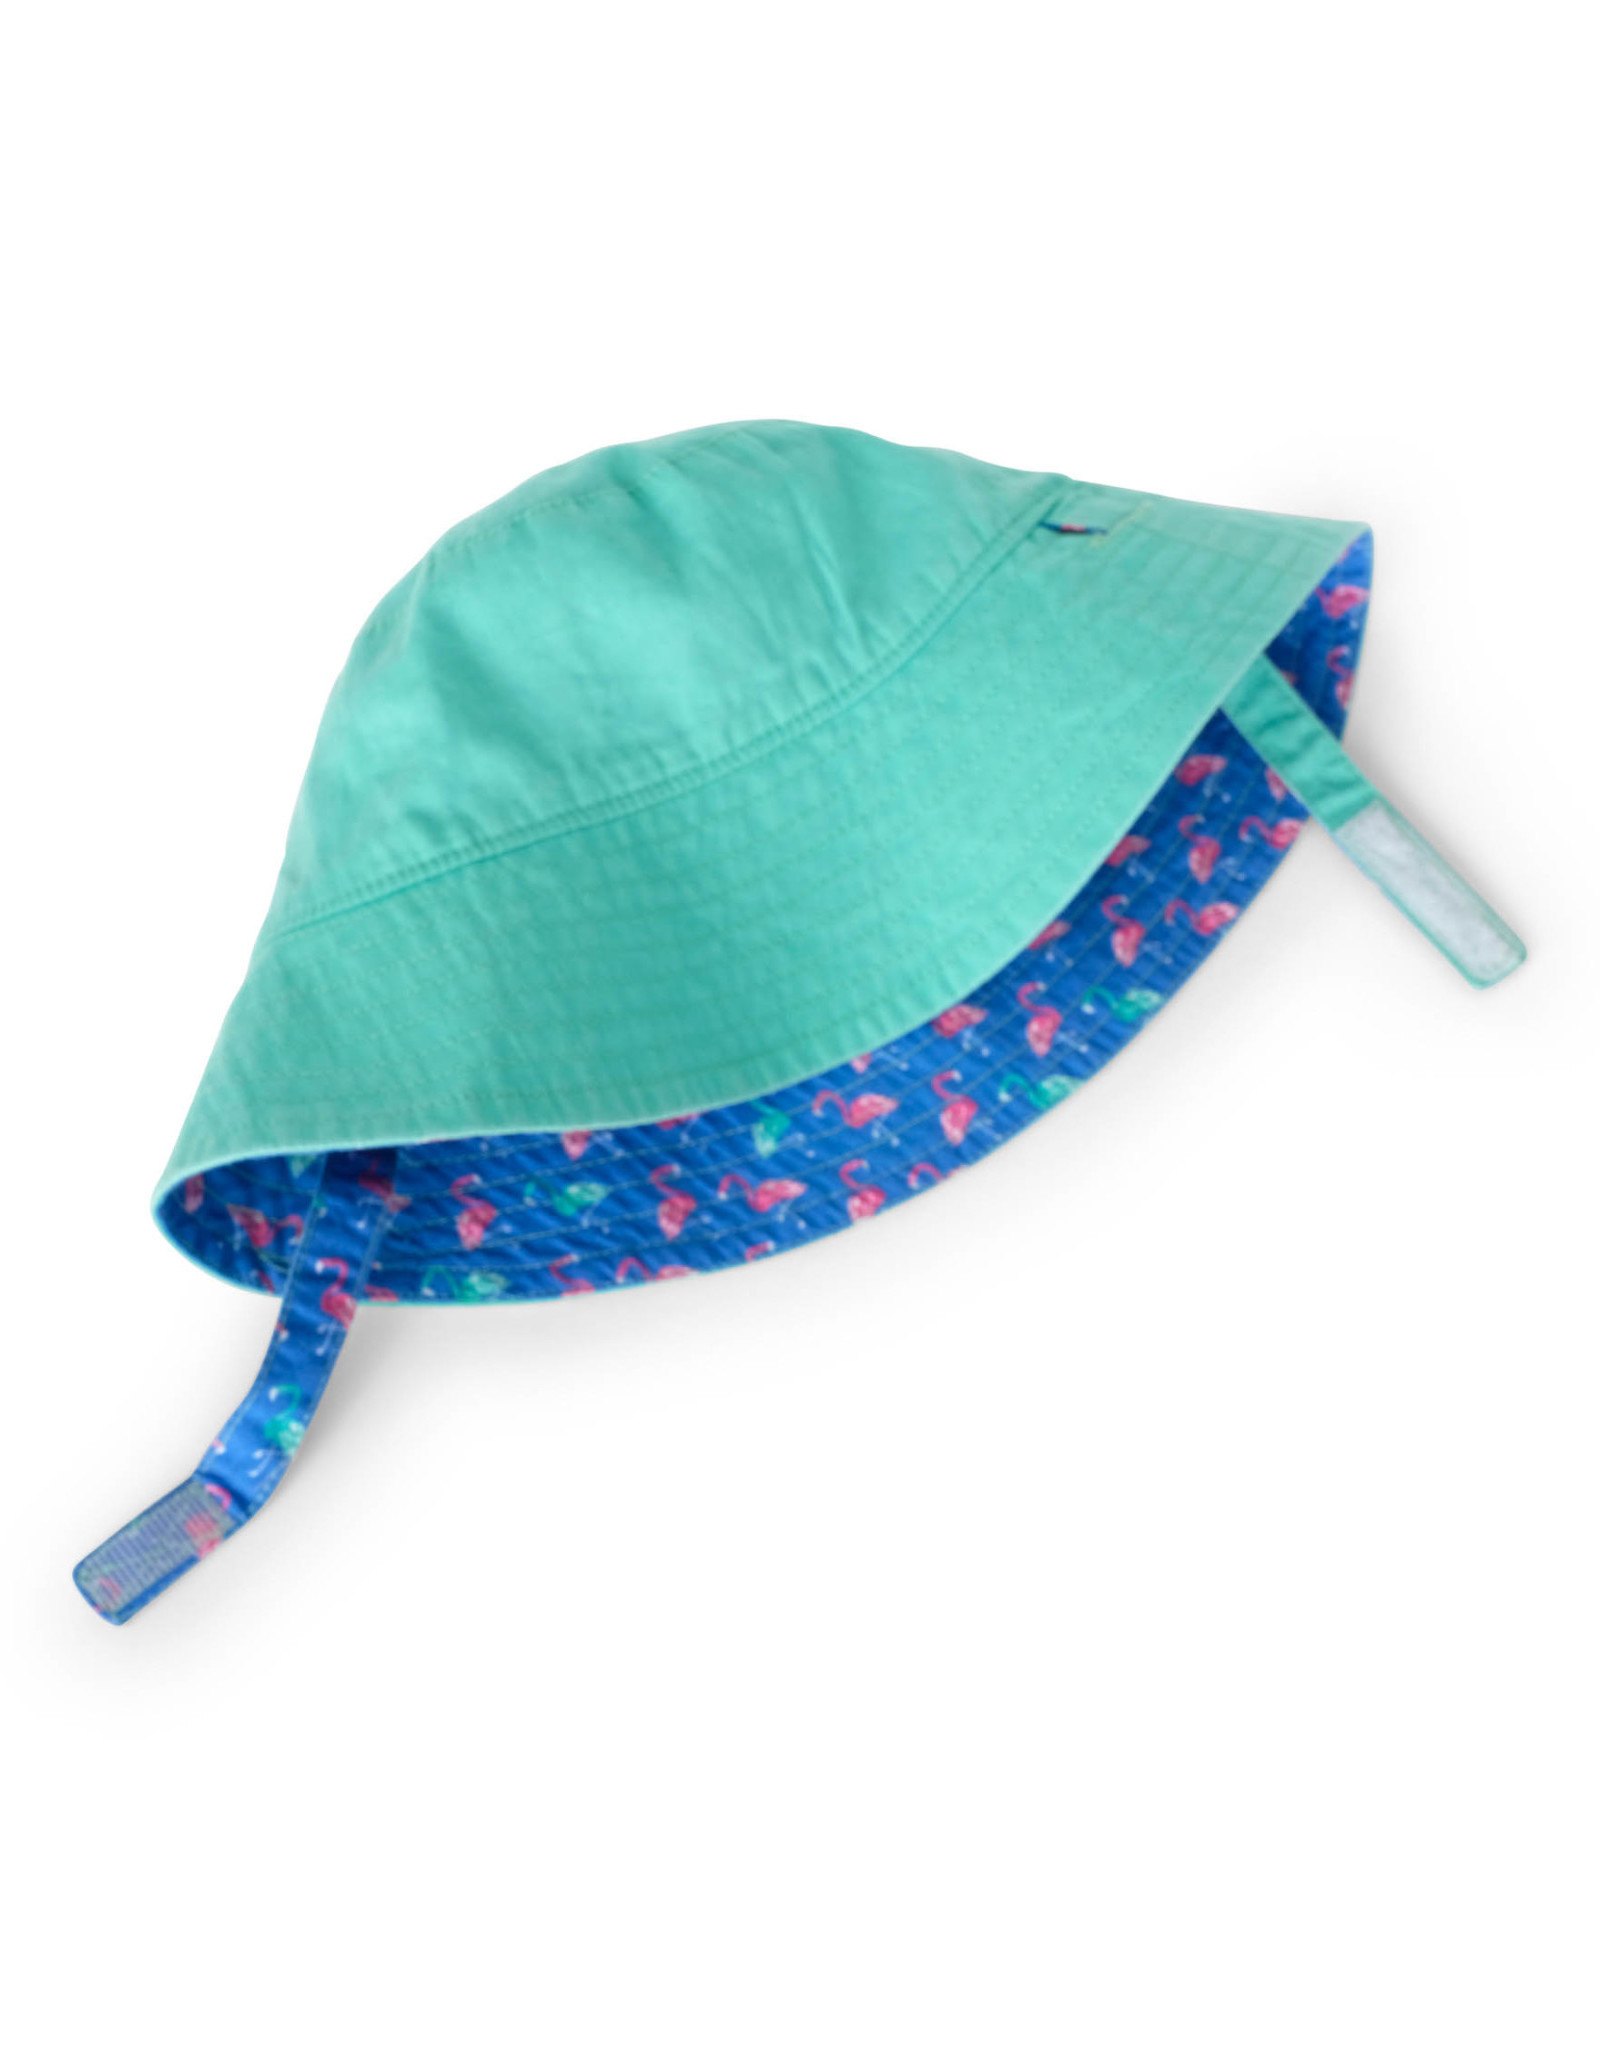 LITTLE BLUE HOUSE (HATLEY) REVERSIBLE SUN HAT